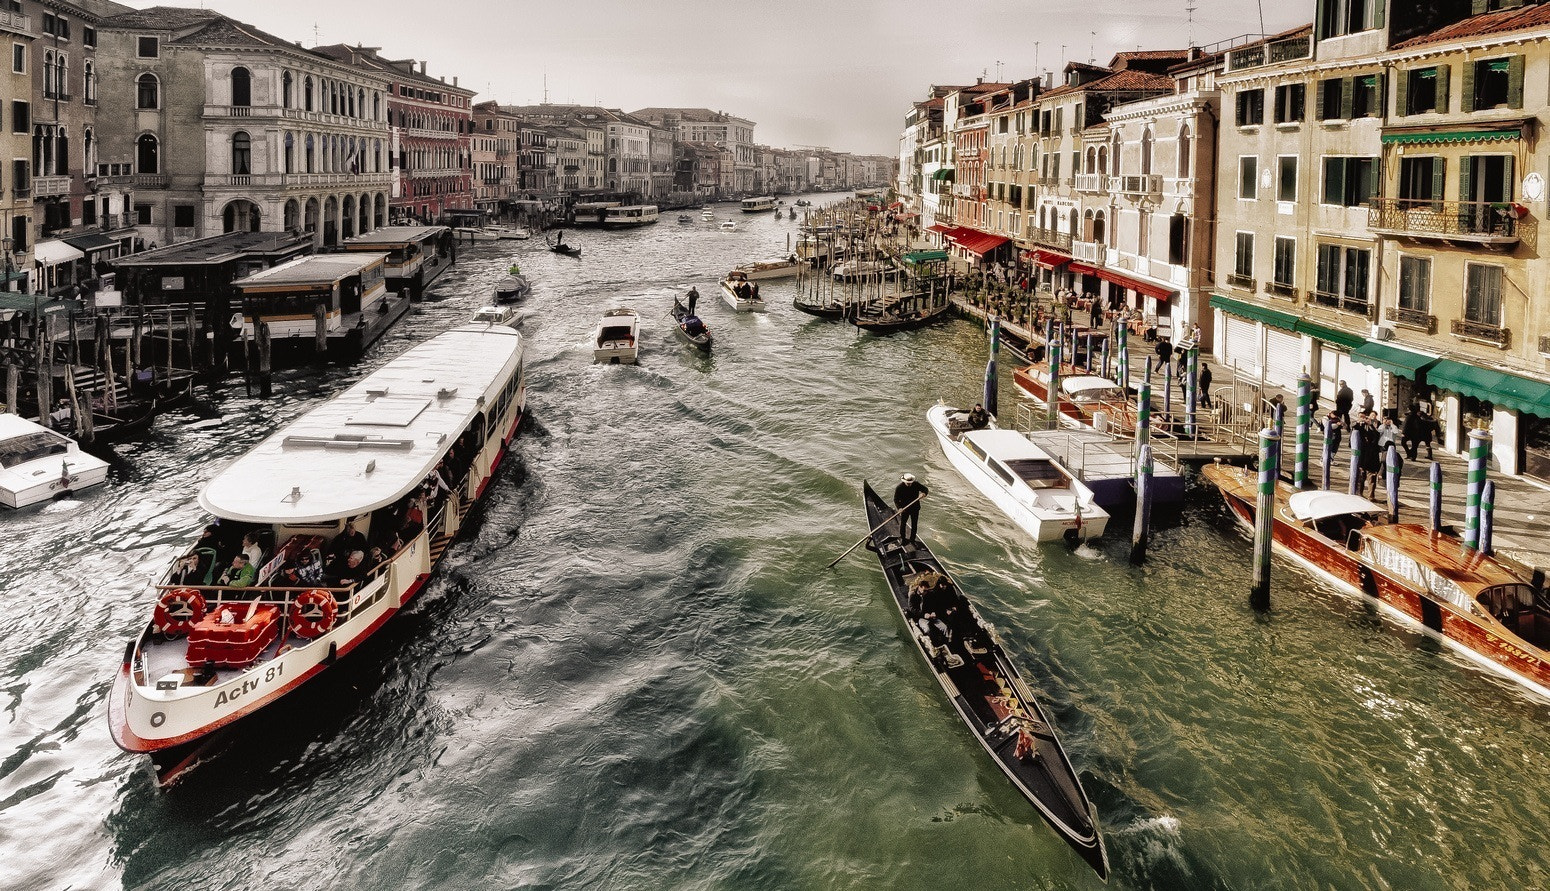 Photograph Venedig by Tom Walk on 500px